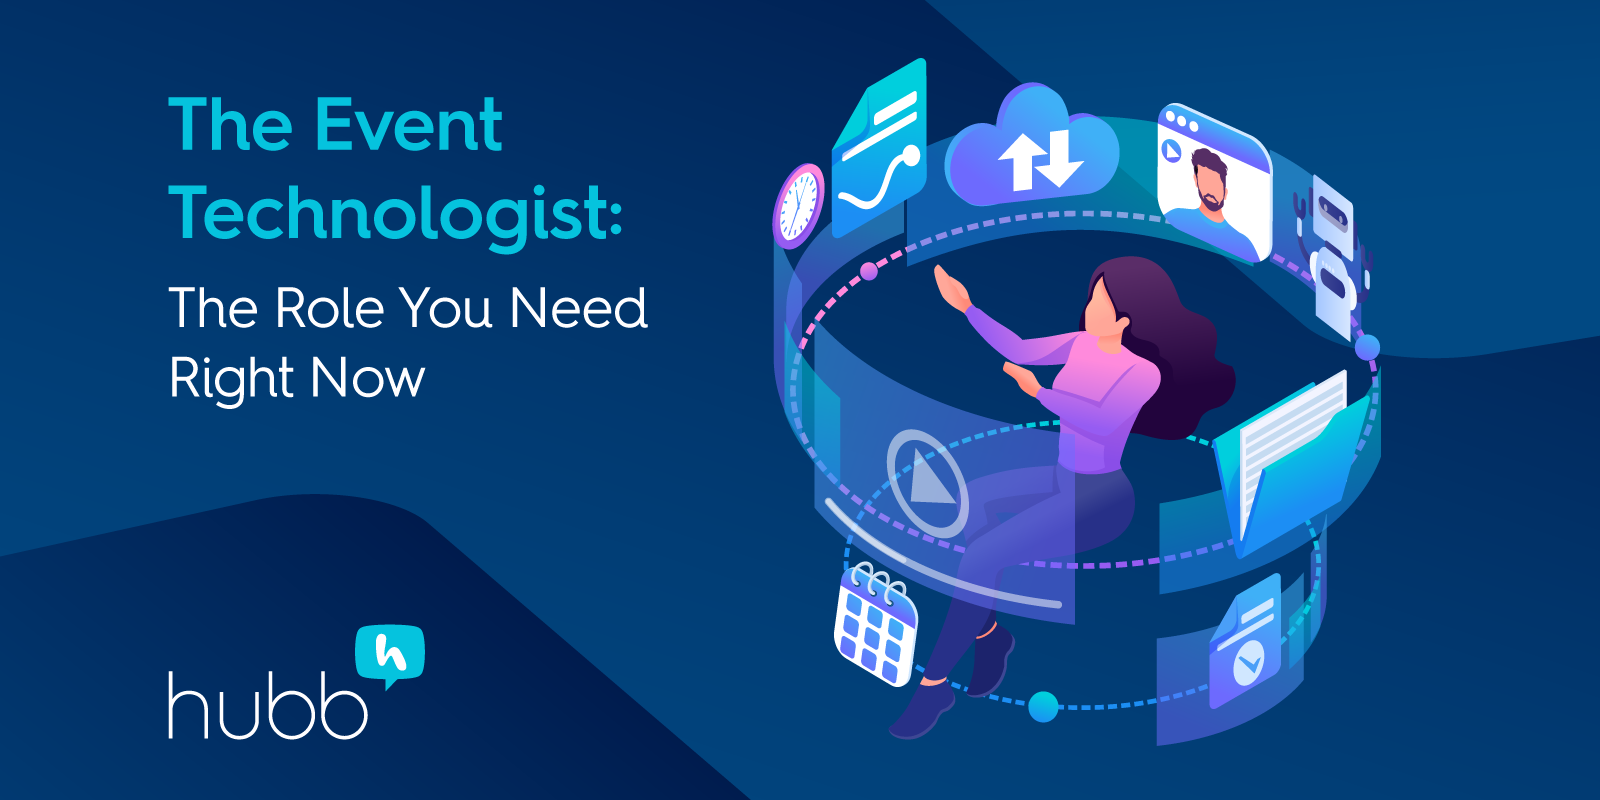 The Event Technologist:  The Role You Need Right Now